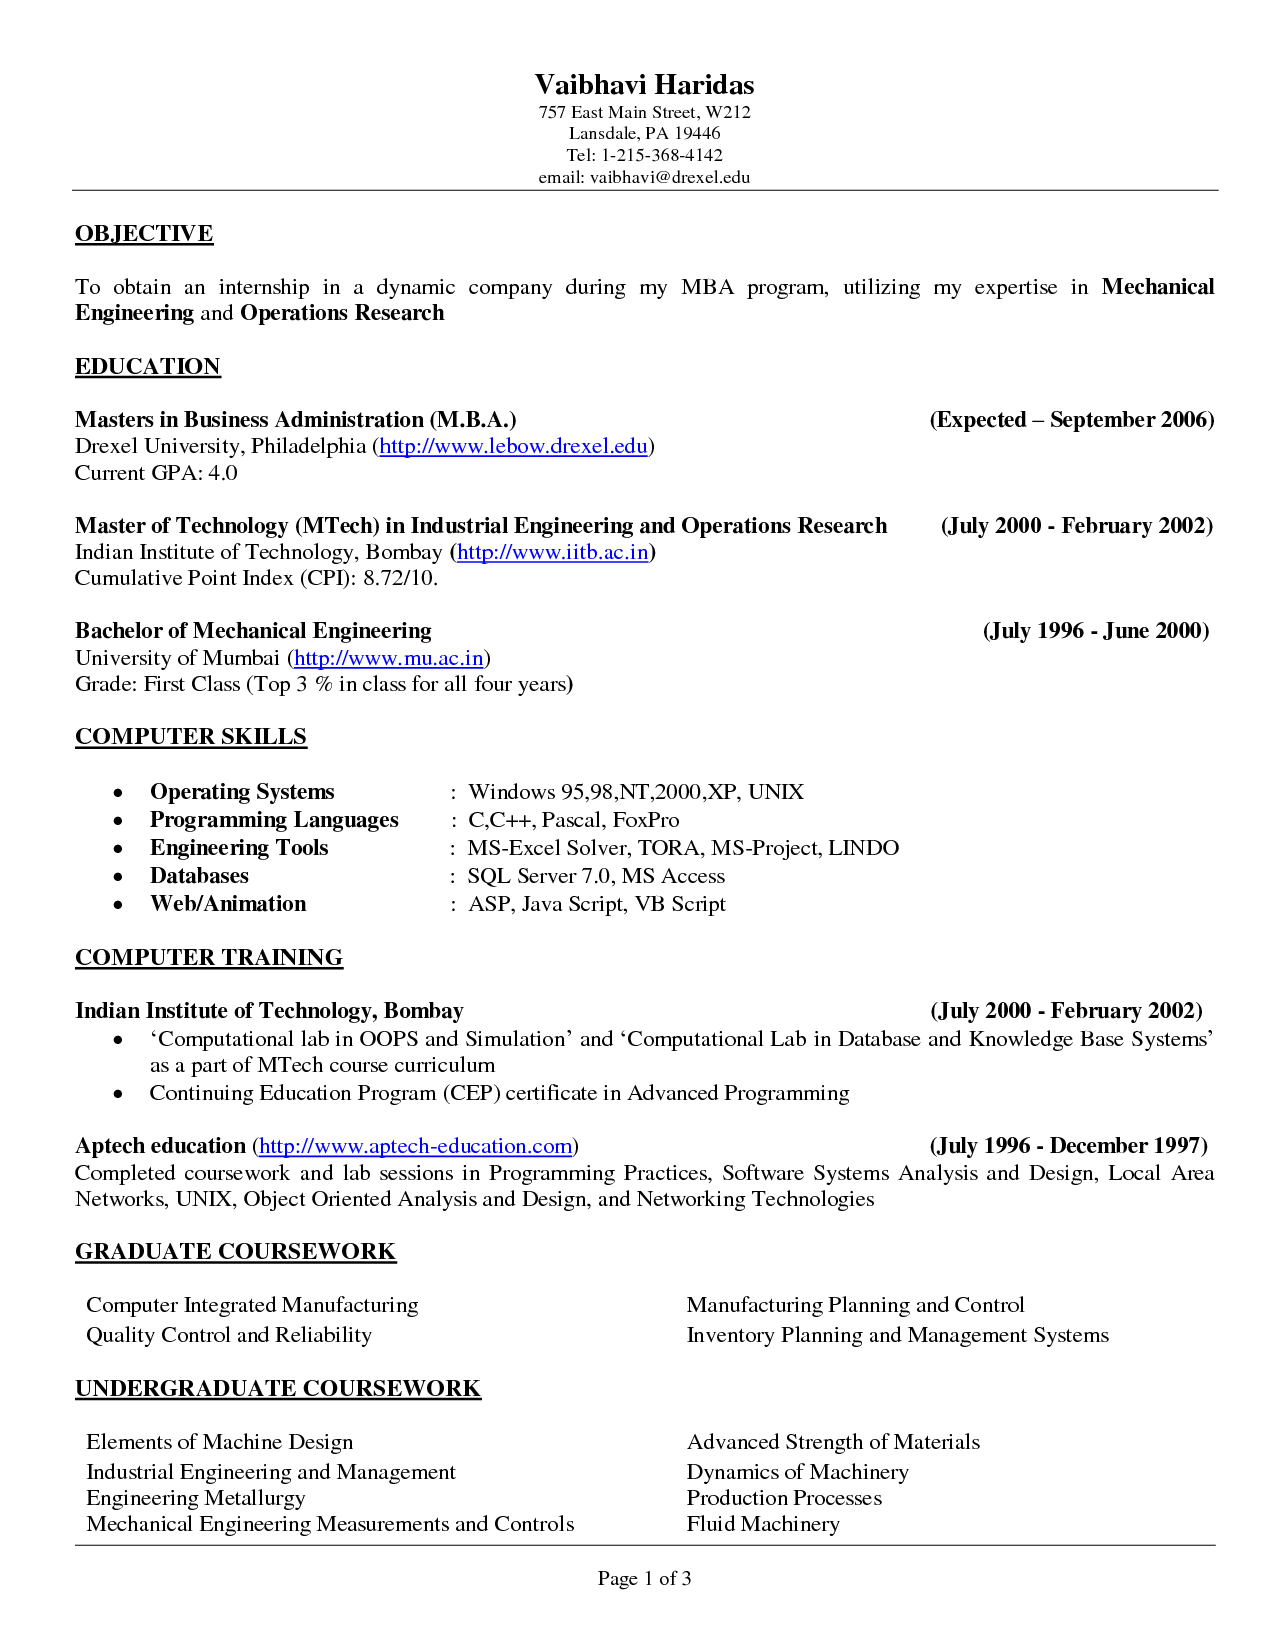 Resume Examples, Internship In Dynamic Company Objective Resume With Master Of Technology In Industrial Engineering